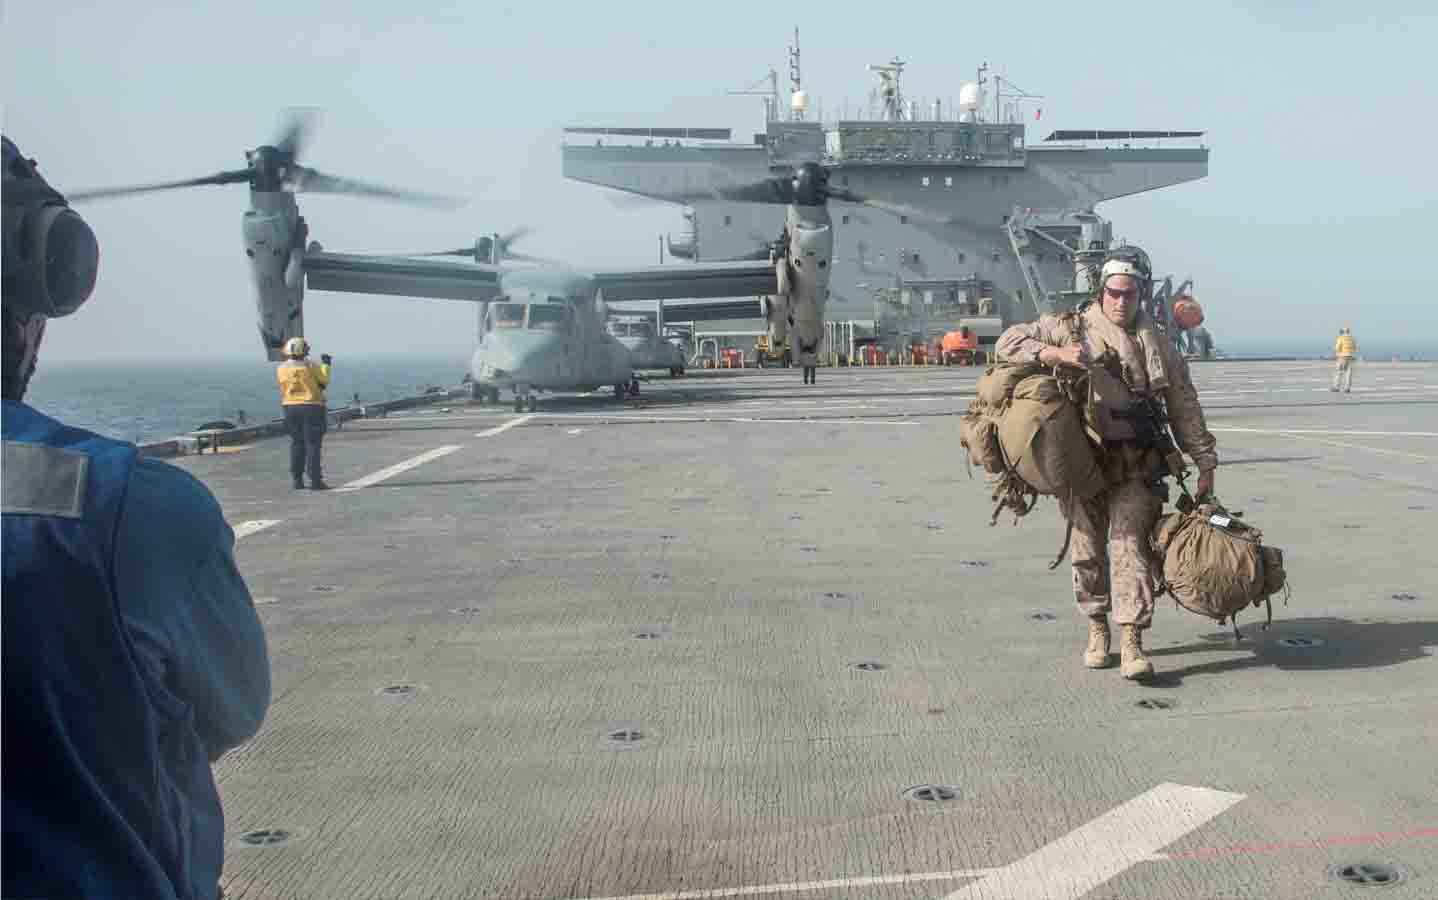 Security concerns. A US Marine Corps officer carries his gear across the flight deck of the USS Lewis B. Puller upon embarkation in the Arabian Gulf, May 11. (Reuters)